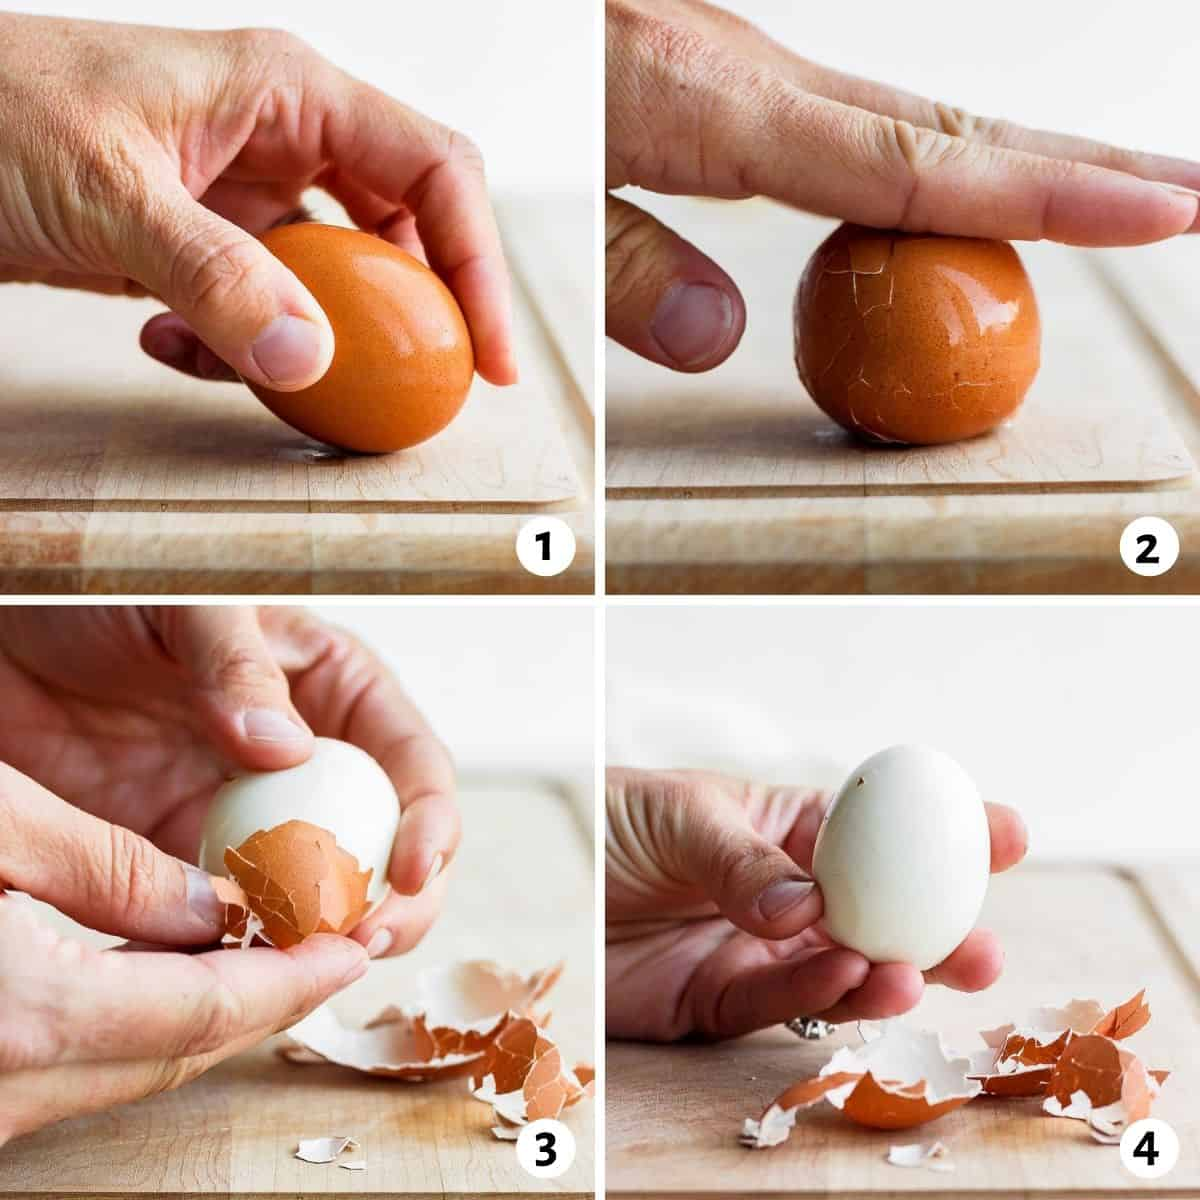 4 image collage to show how to peel hard boiled eggs